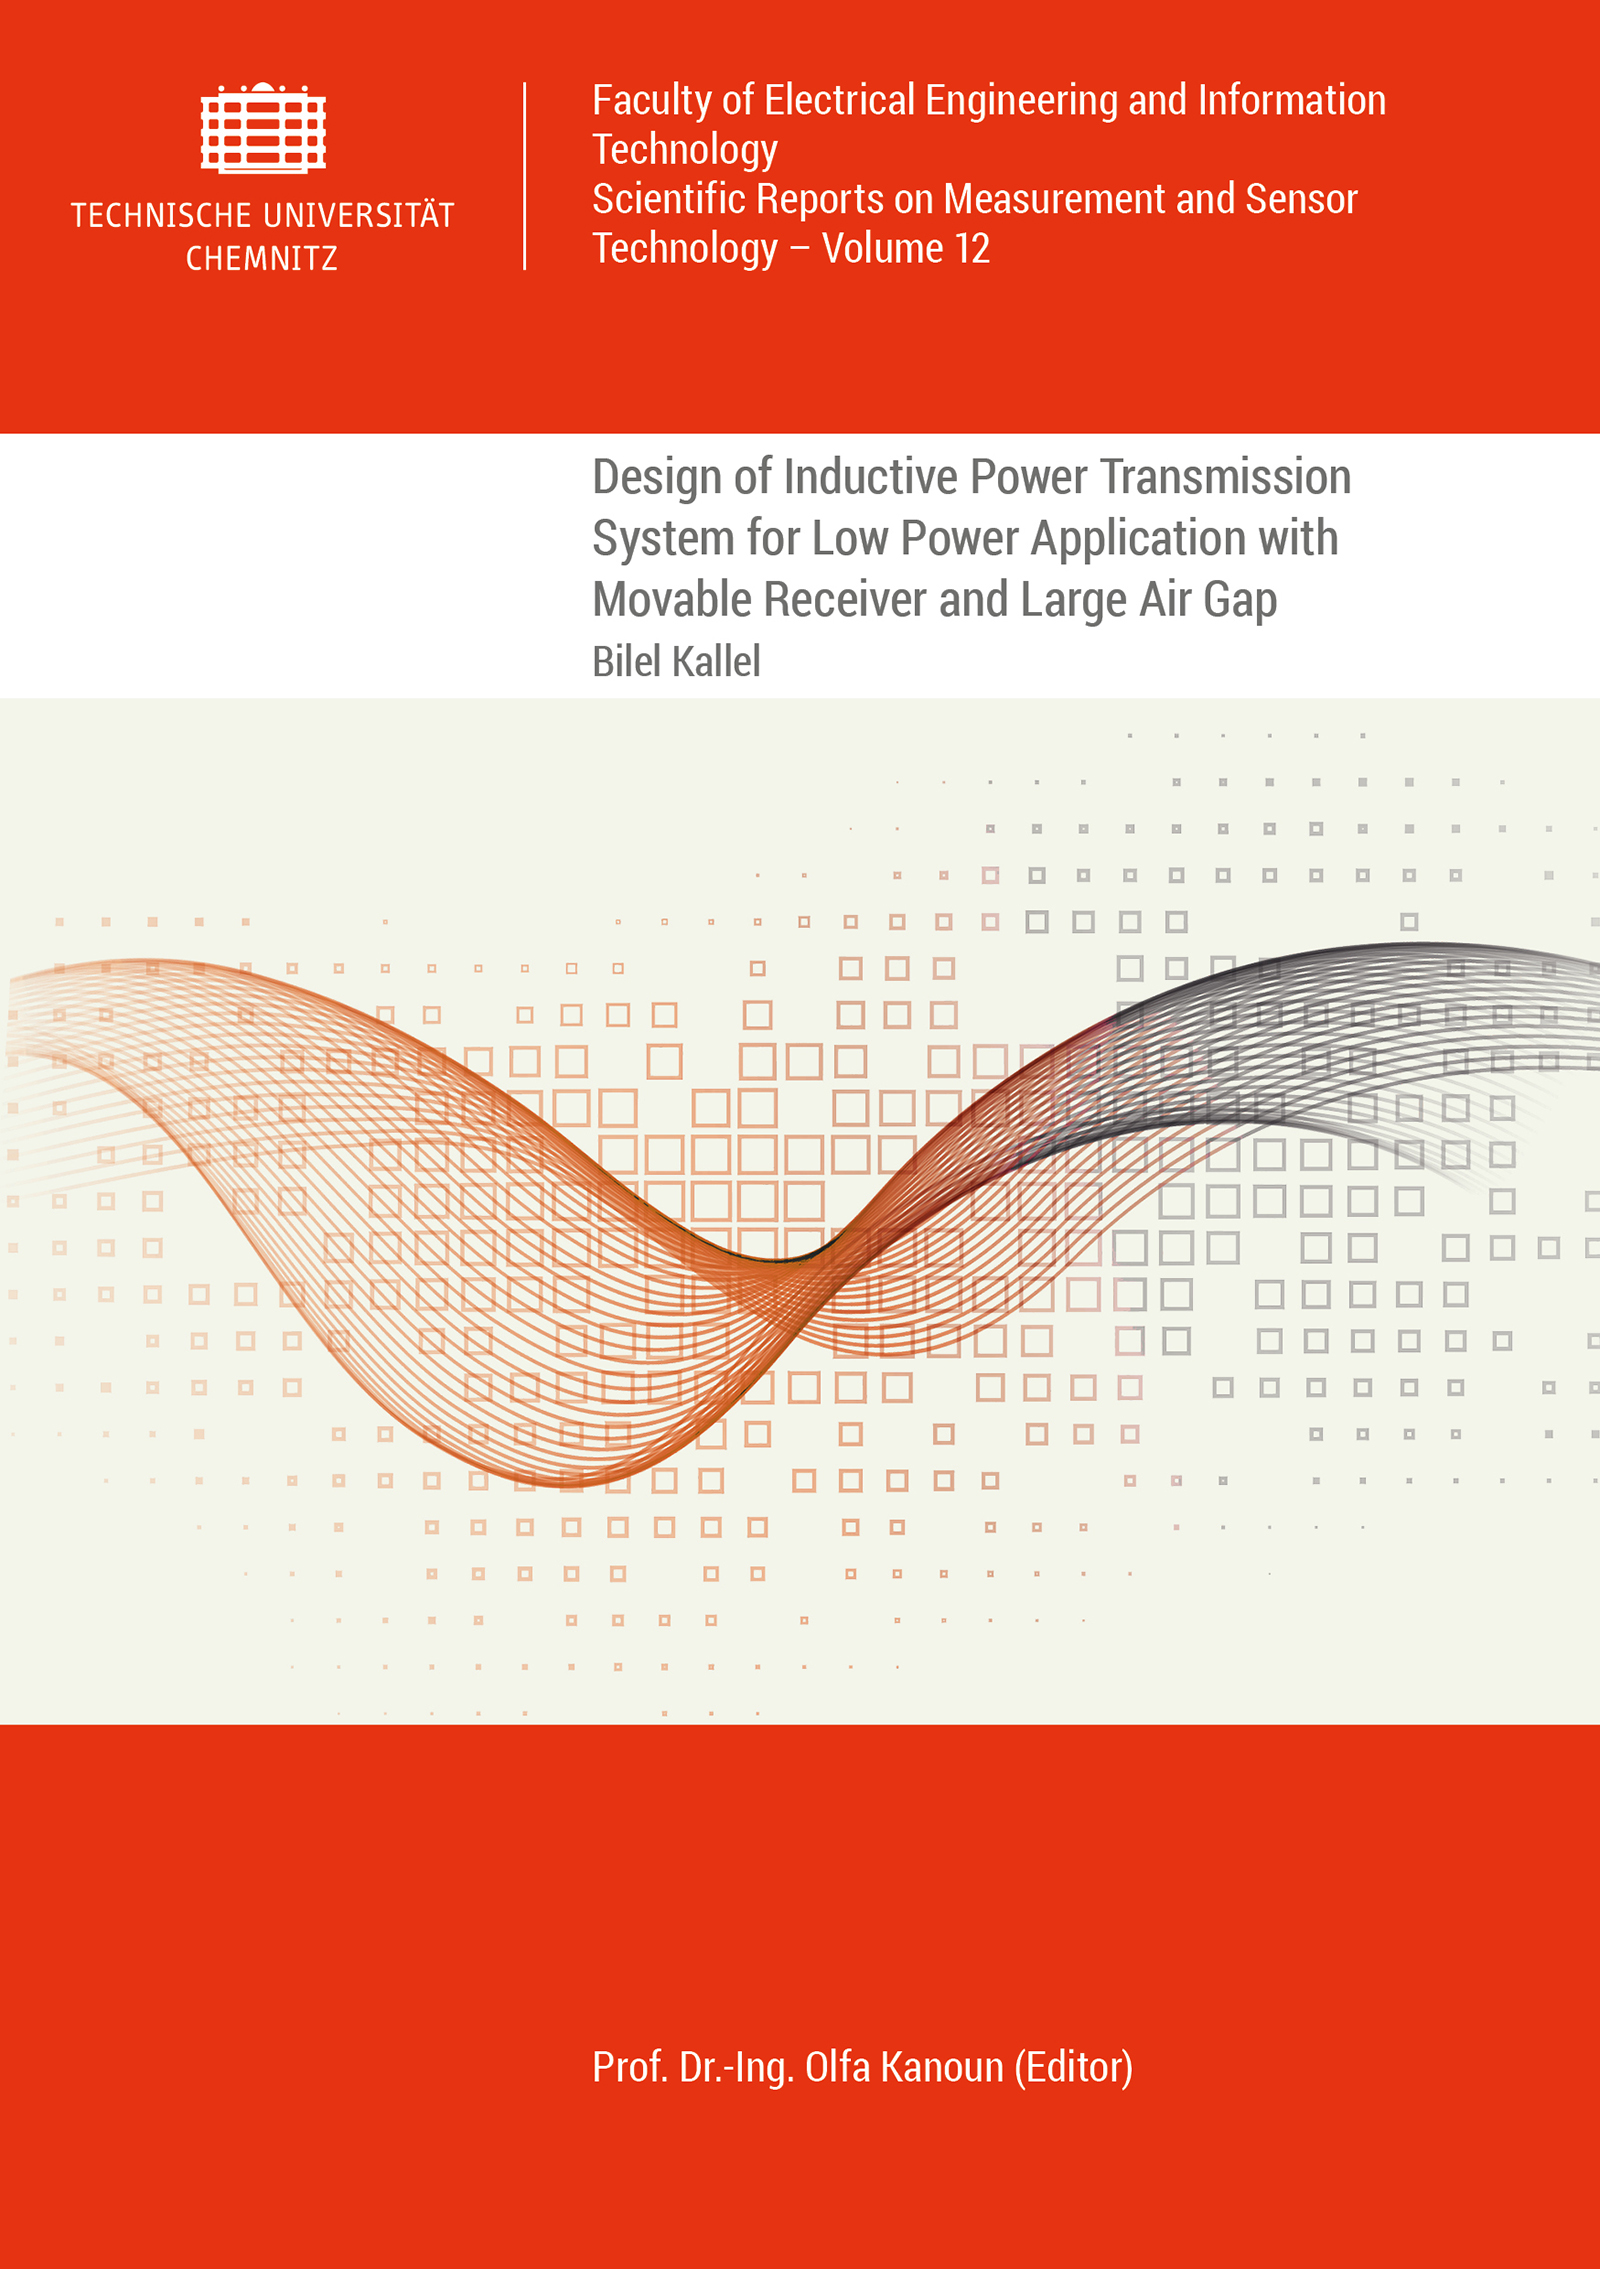 Cover: Design of Inductive Power Transmission System for Low Power Application with Movable Receiver and Large Air Gap